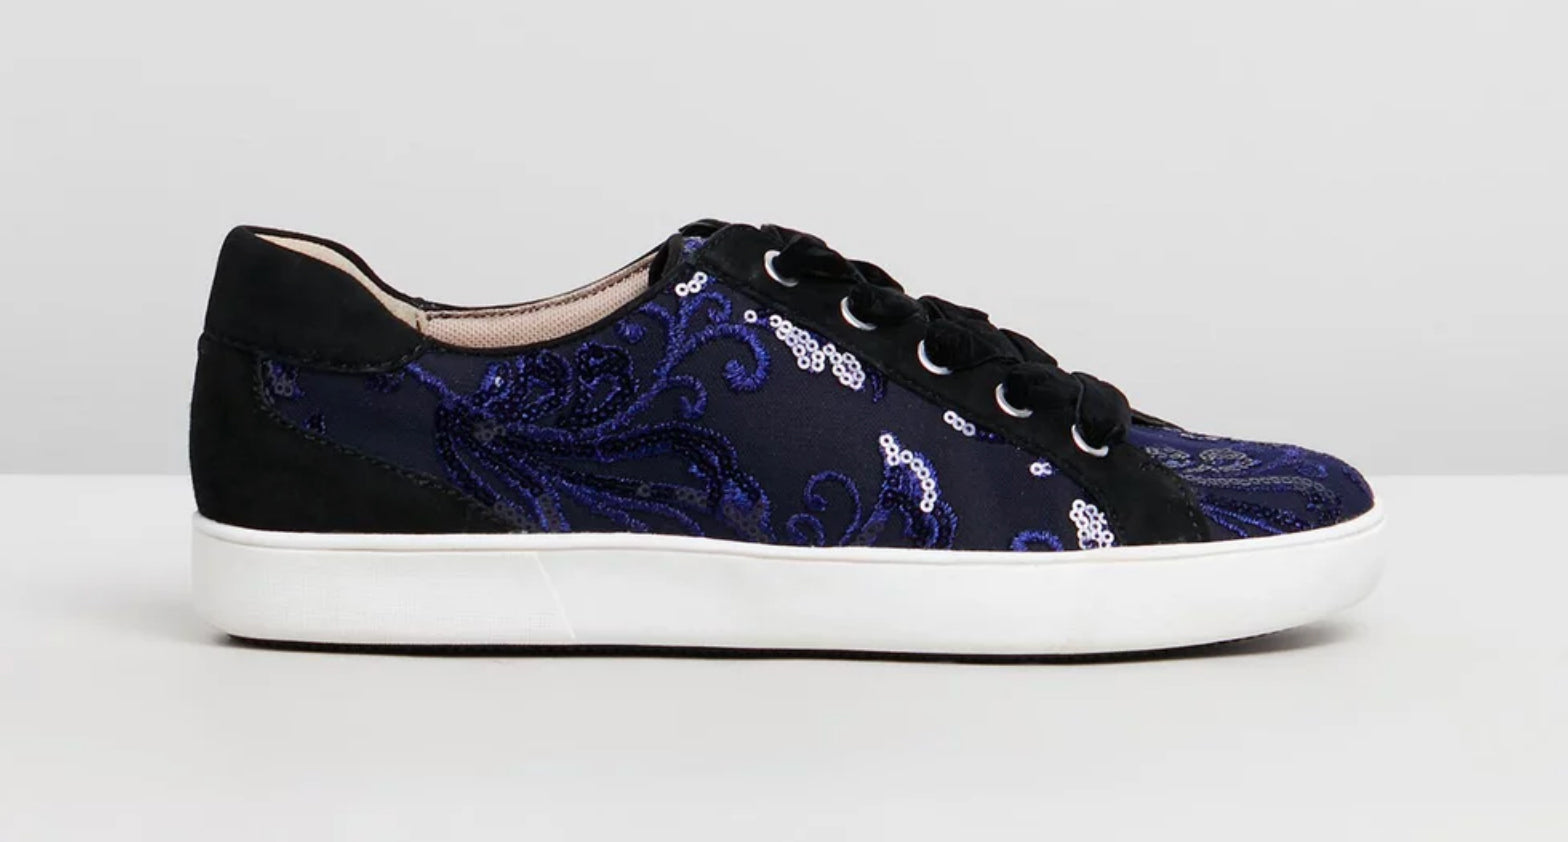 Naturalizer - Blue navy and black 'Morrison' sneakers shoes